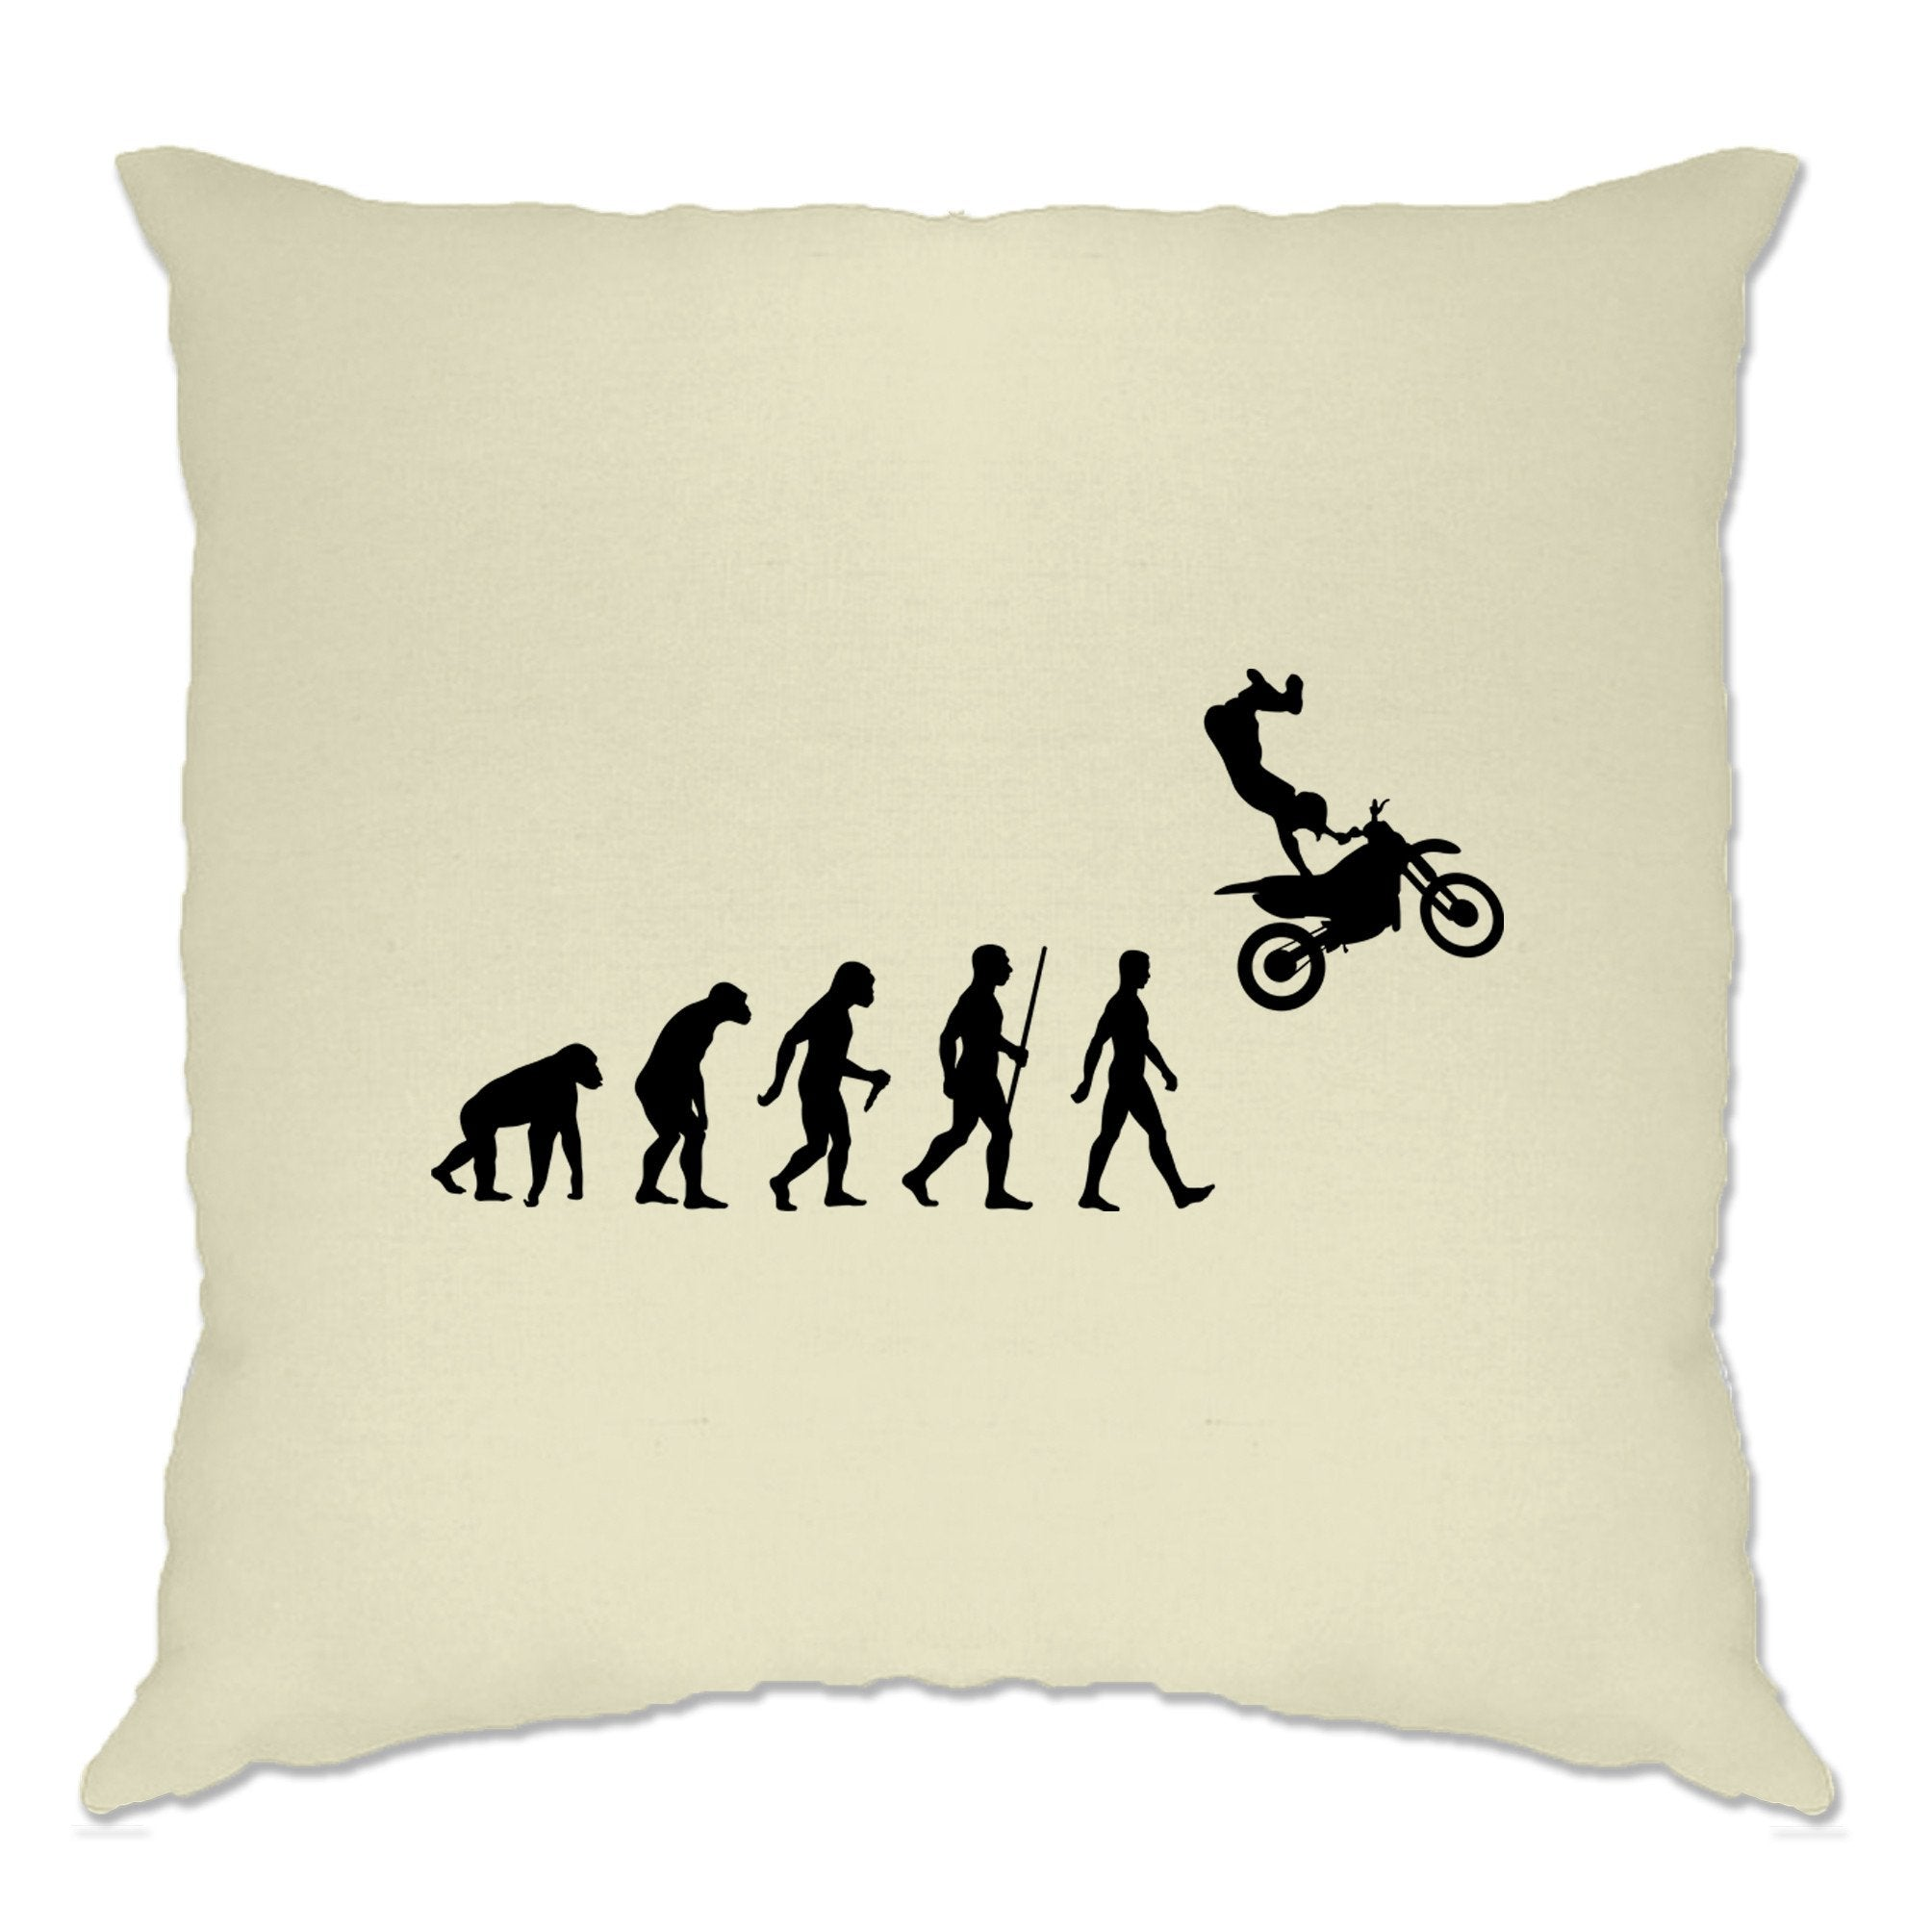 Sports Cushion Cover The Evolution Of Motocross Jumping